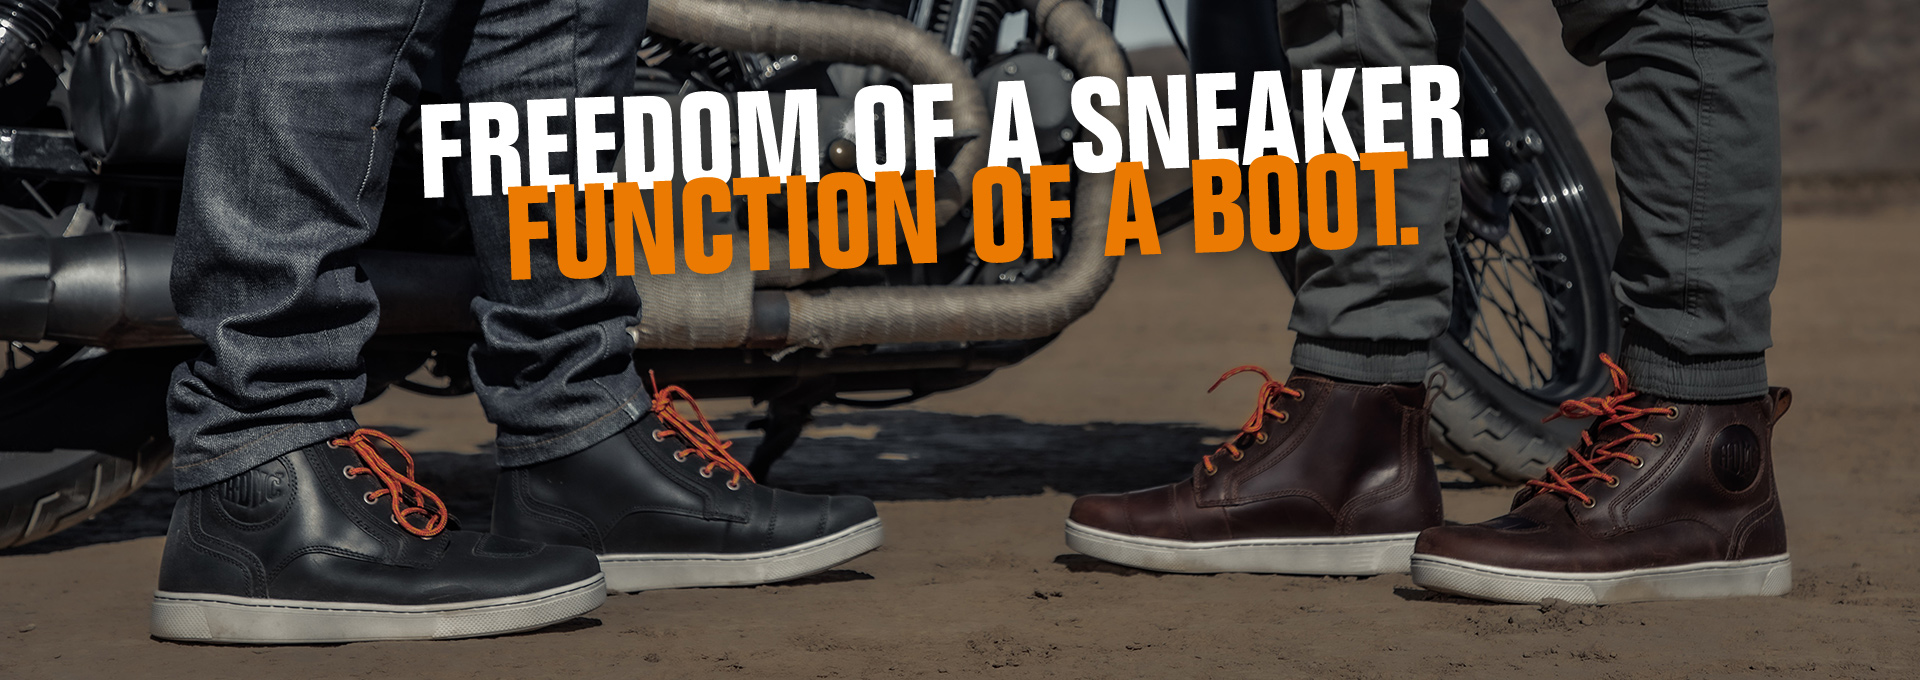 Freedom of a sneaker.  Function of a boot.